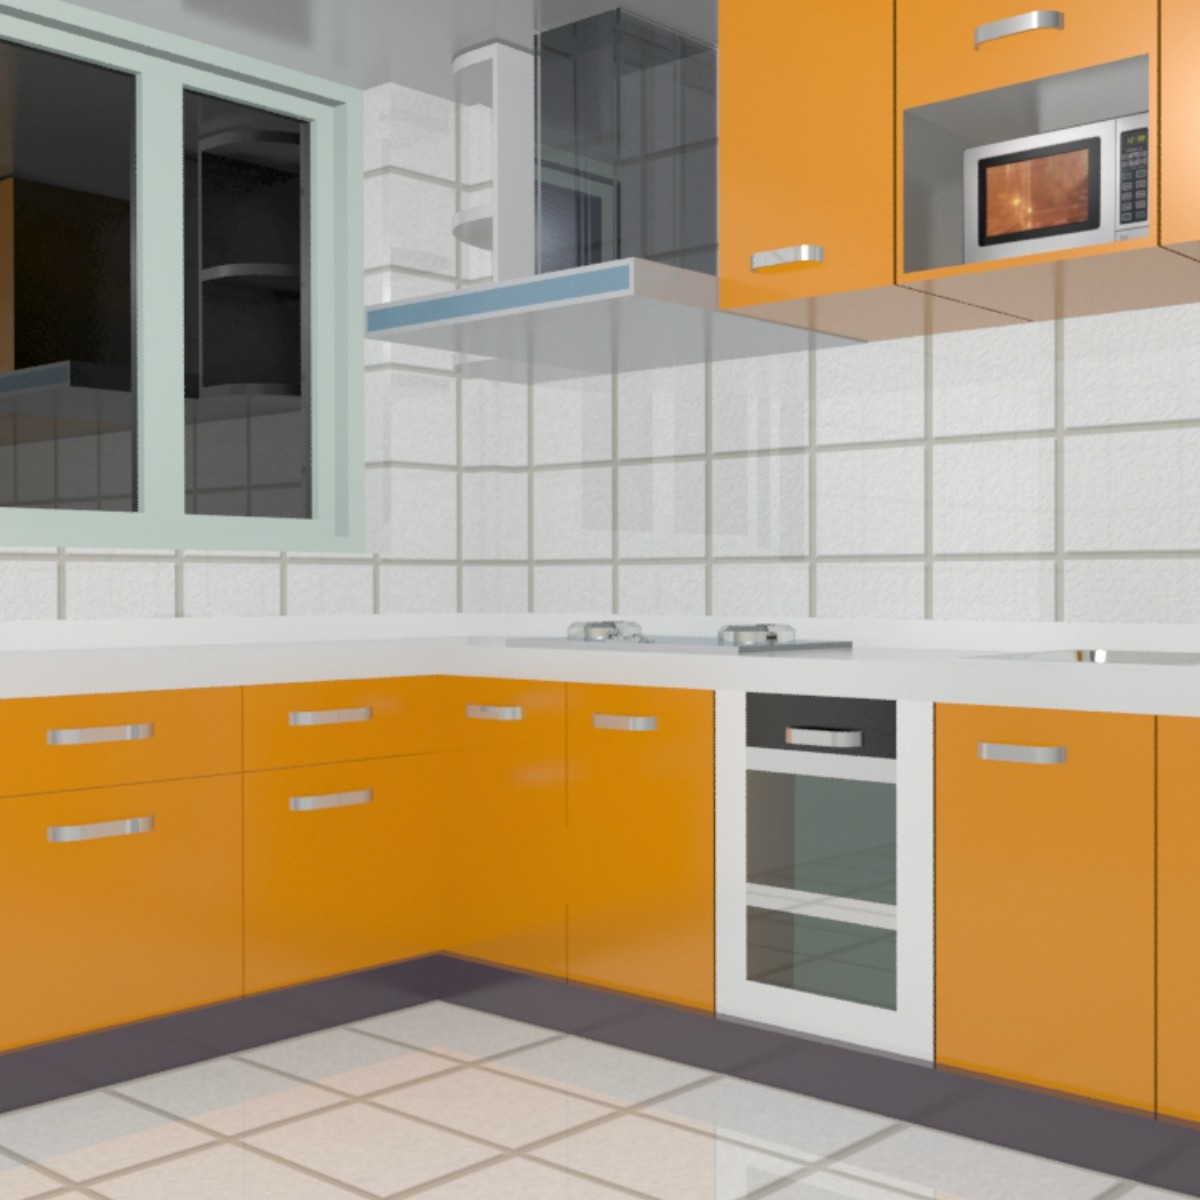 Small Kitchen Models Foundation Dezin And Decor 3d Kitchen Model Design